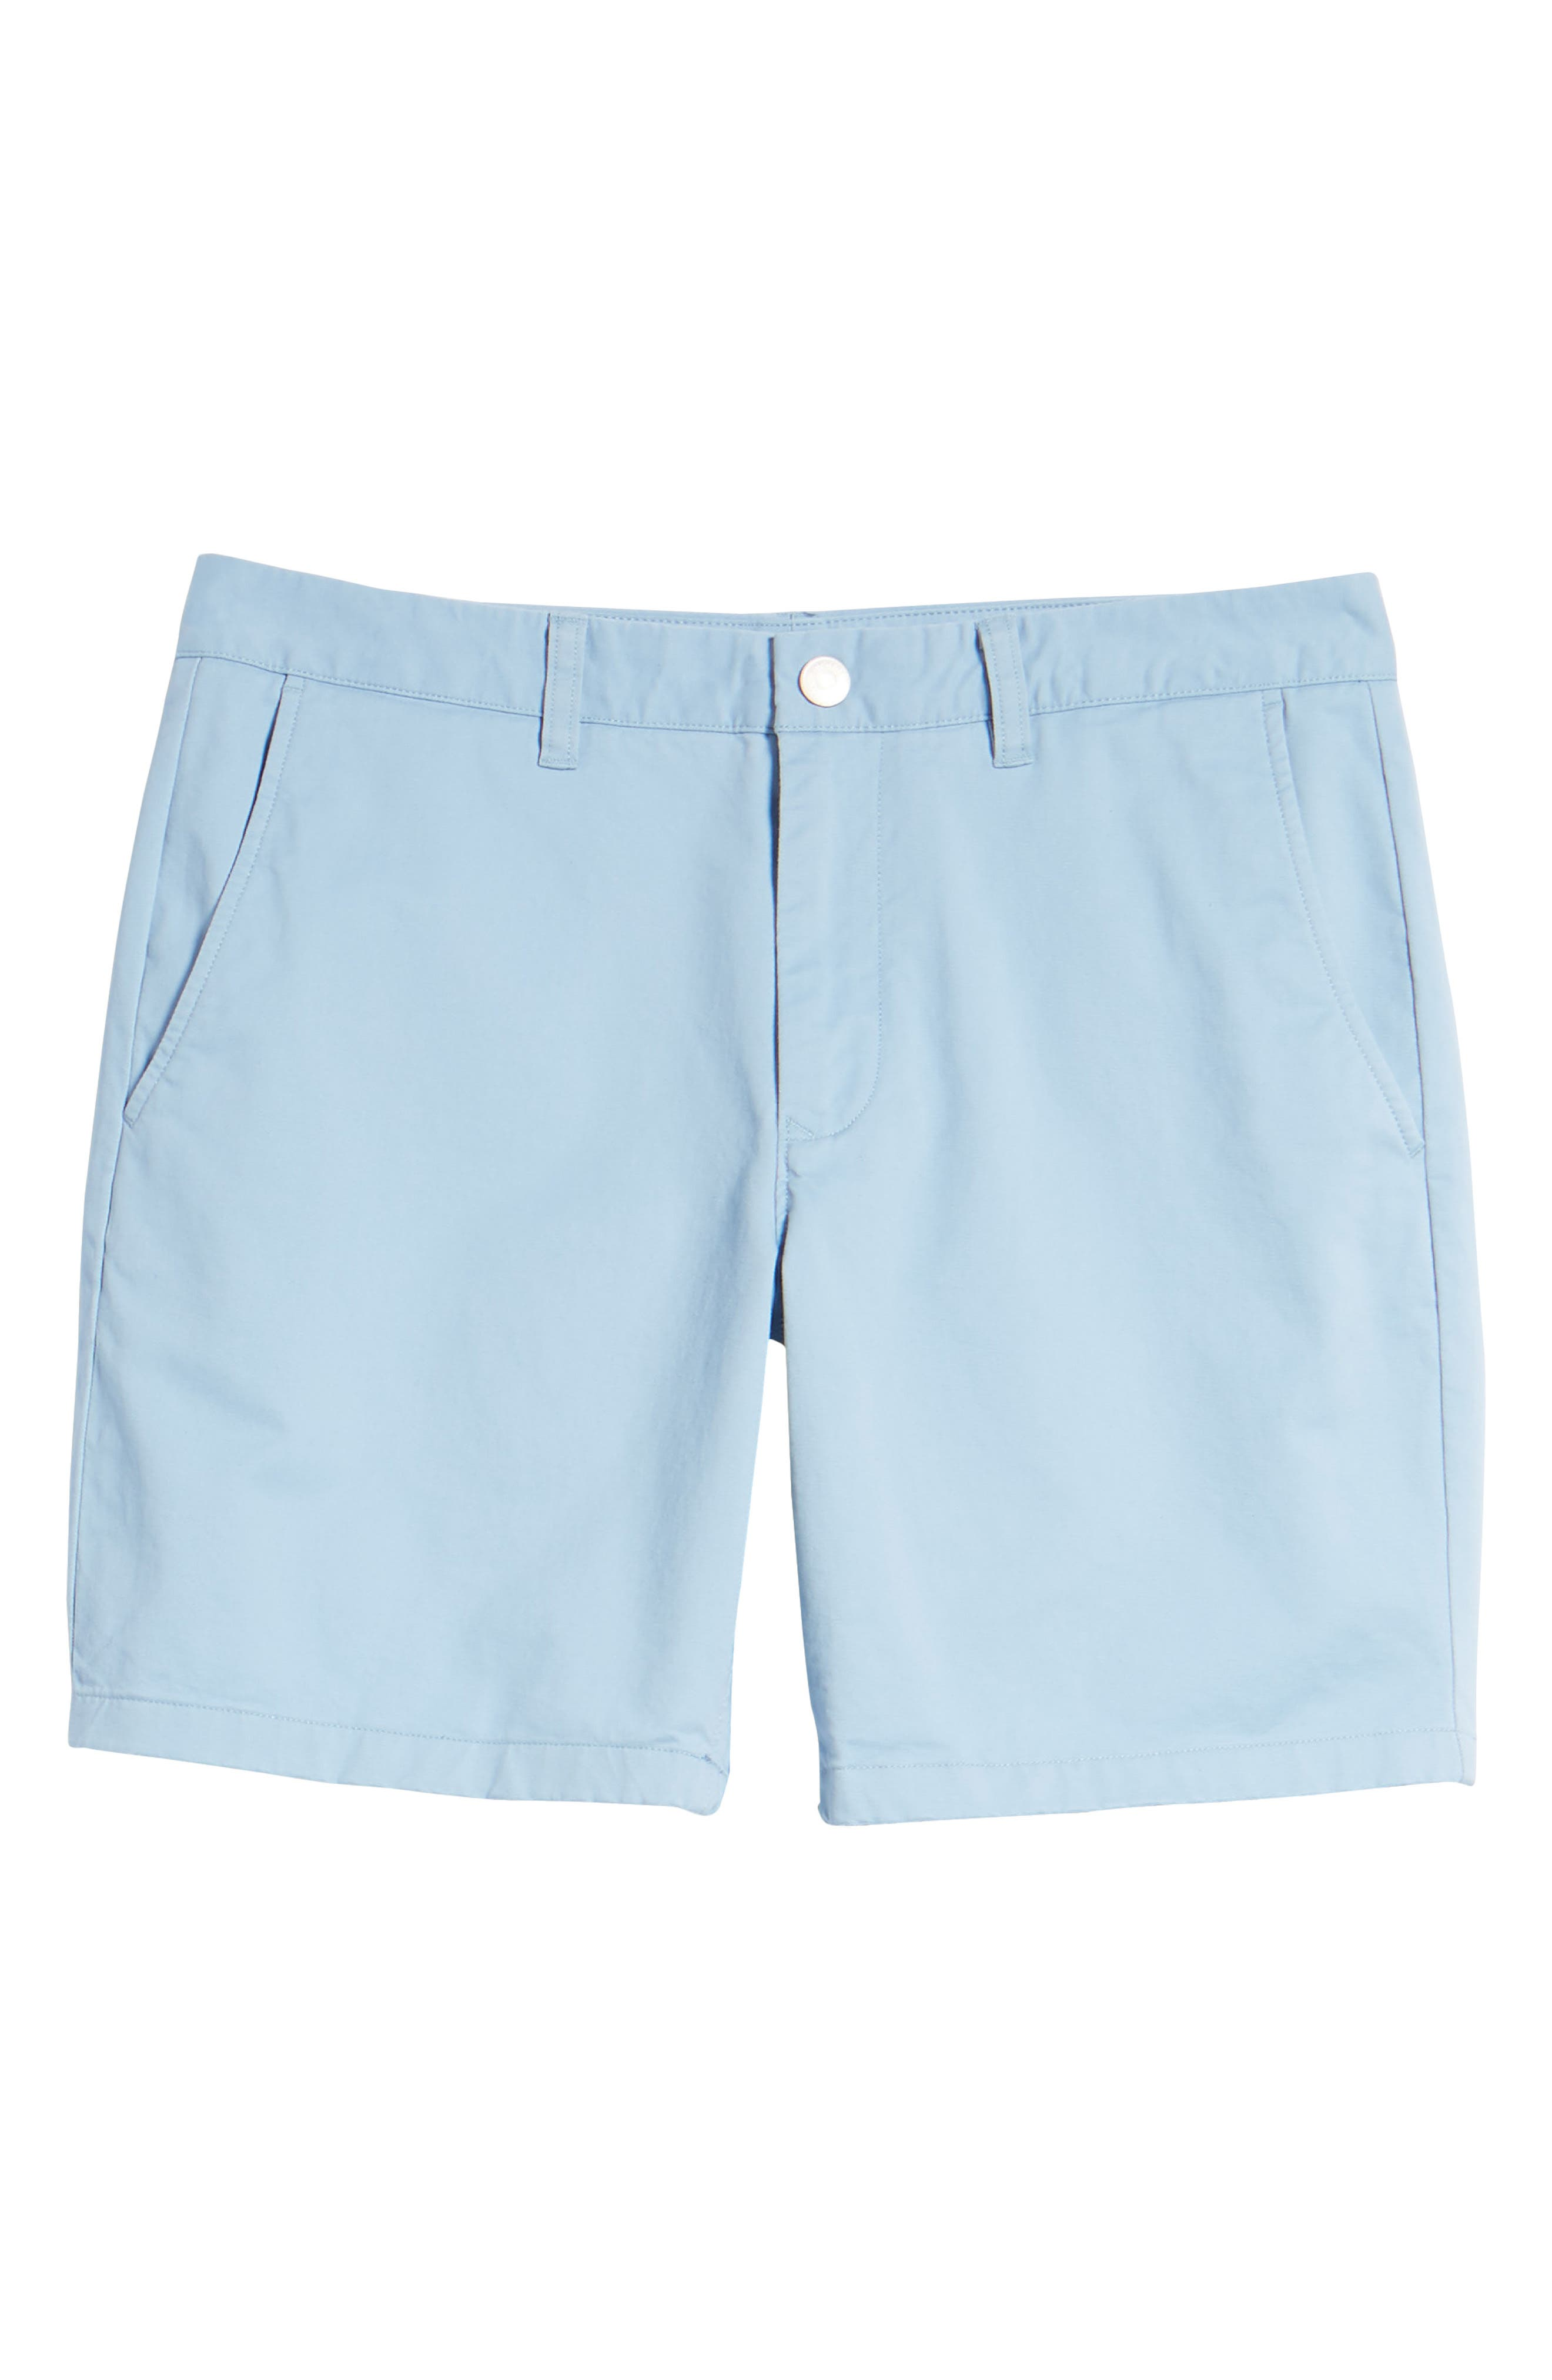 Stretch Washed Chino 7-Inch Shorts,                             Alternate thumbnail 115, color,